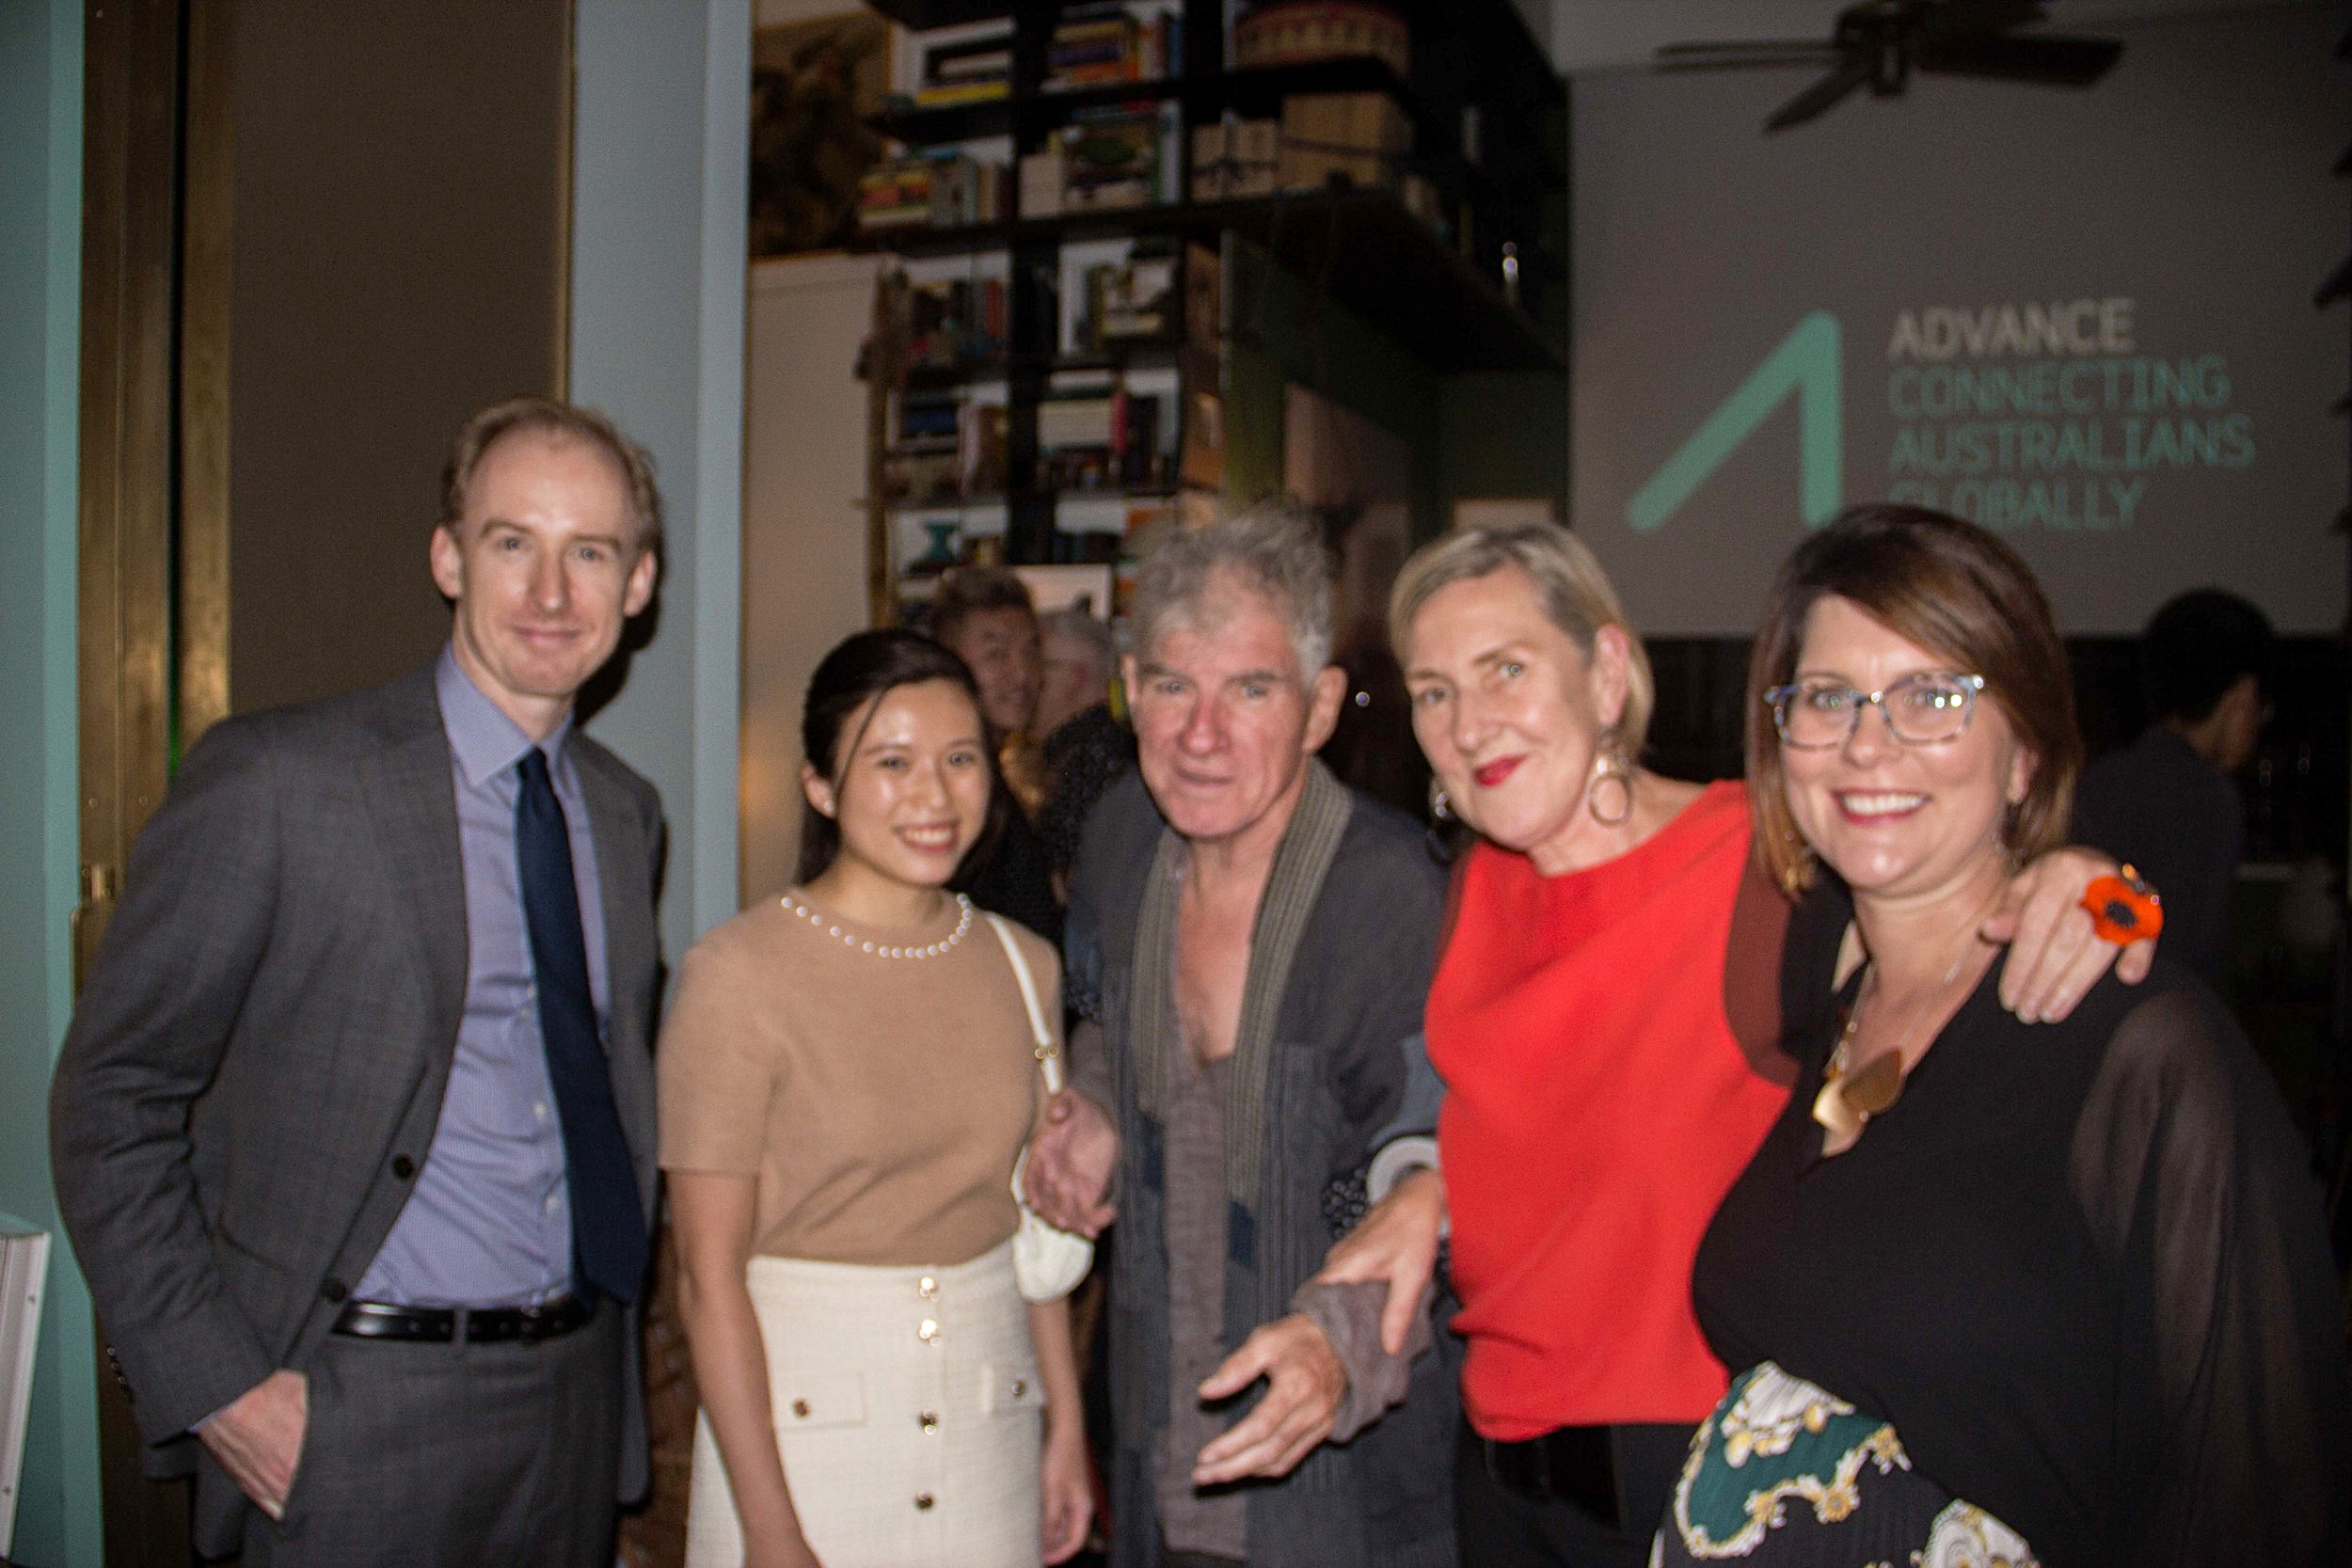 From left to right: Sam Guthrie, Senior Trade Commissioner, Deputy Consul-General of AustralianConsulate-General in Hong Kong, Michelle Li, Christopher Doyle, Michelle Garnaut AO , Advance Global Board Member and Stefanie Myers, Advance Asia Director.